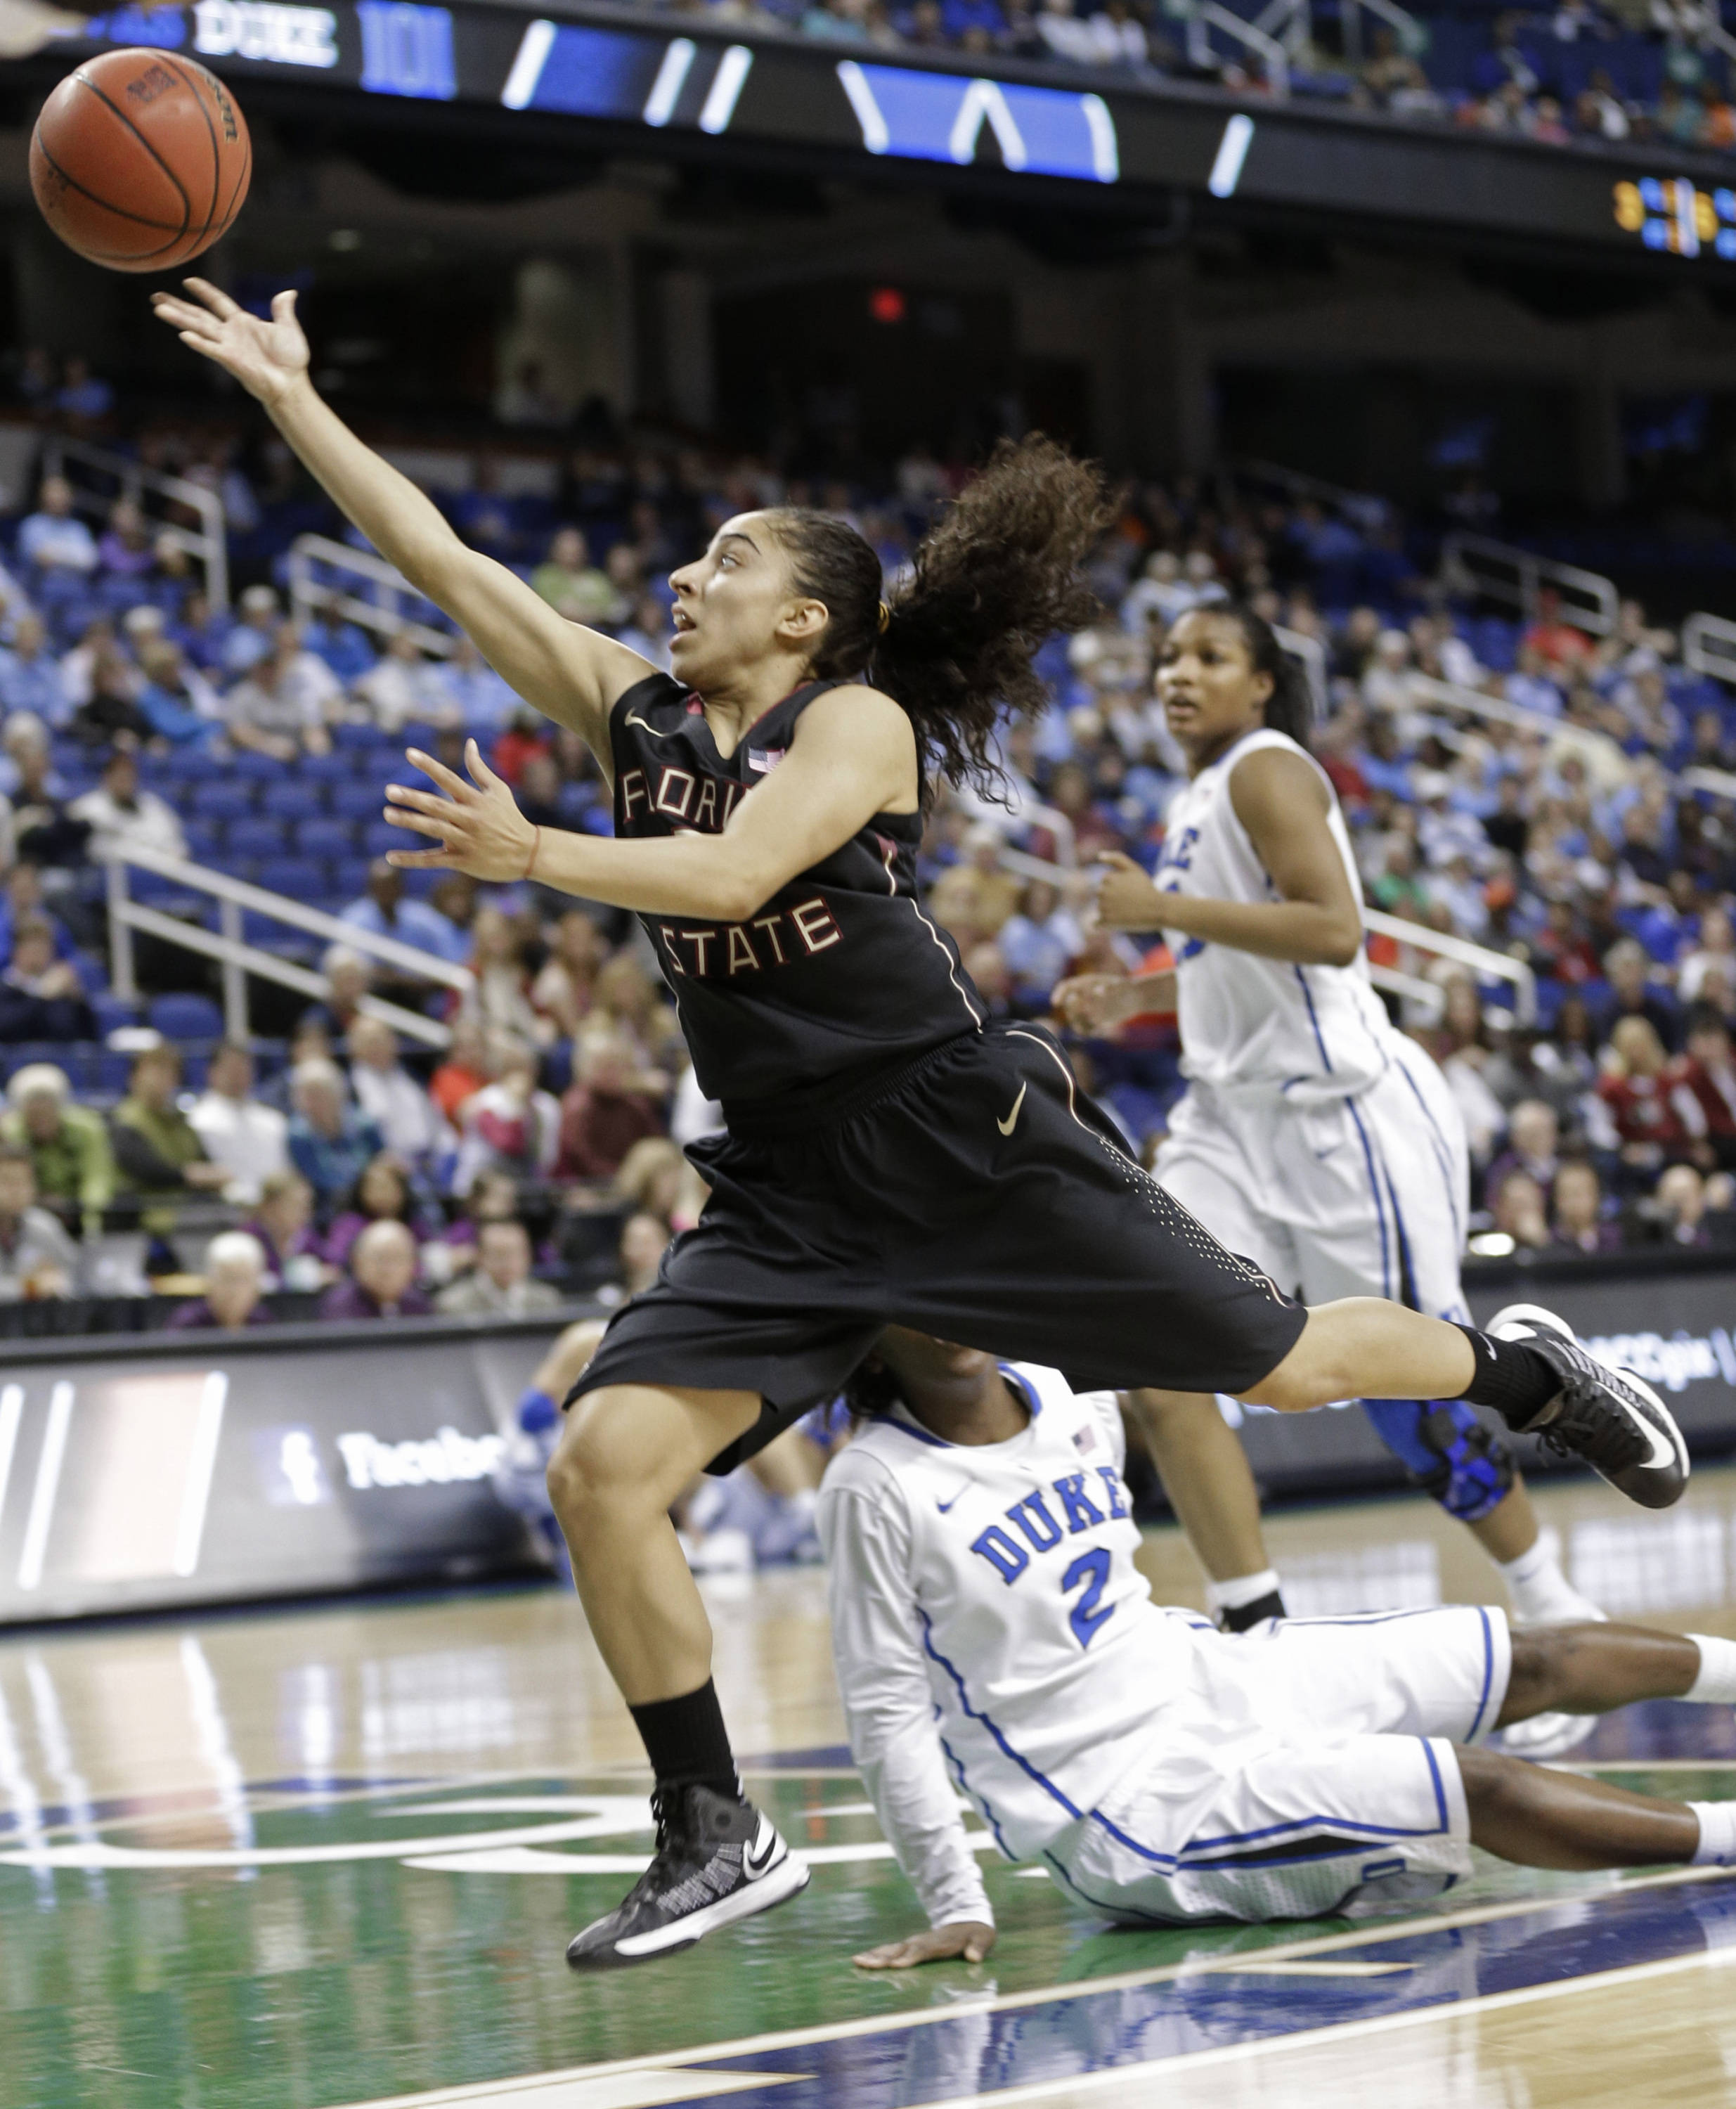 Florida State's Yashira Delgado (5) drives past Duke's Alexis Jones (2). (AP Photo/Chuck Burton)